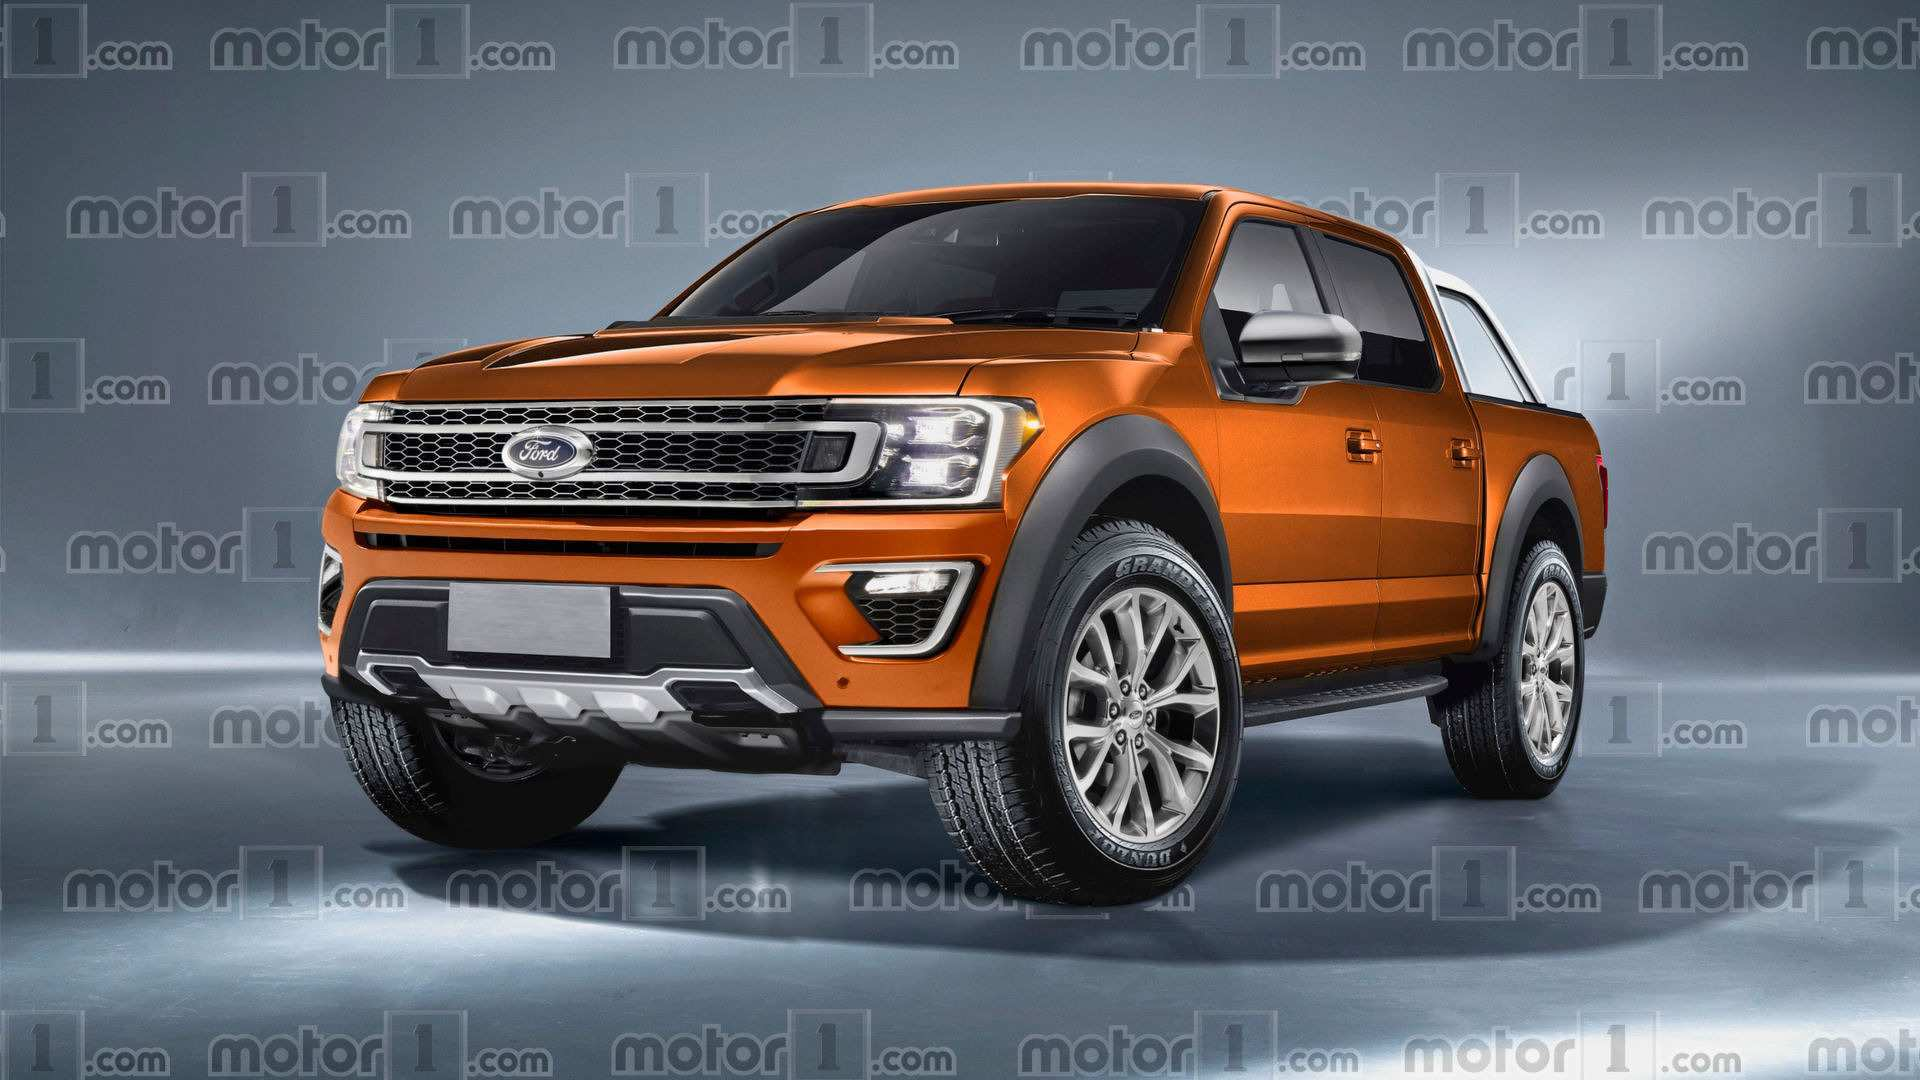 91 Gallery of 2020 Ford Ranger Usa Model with 2020 Ford Ranger Usa